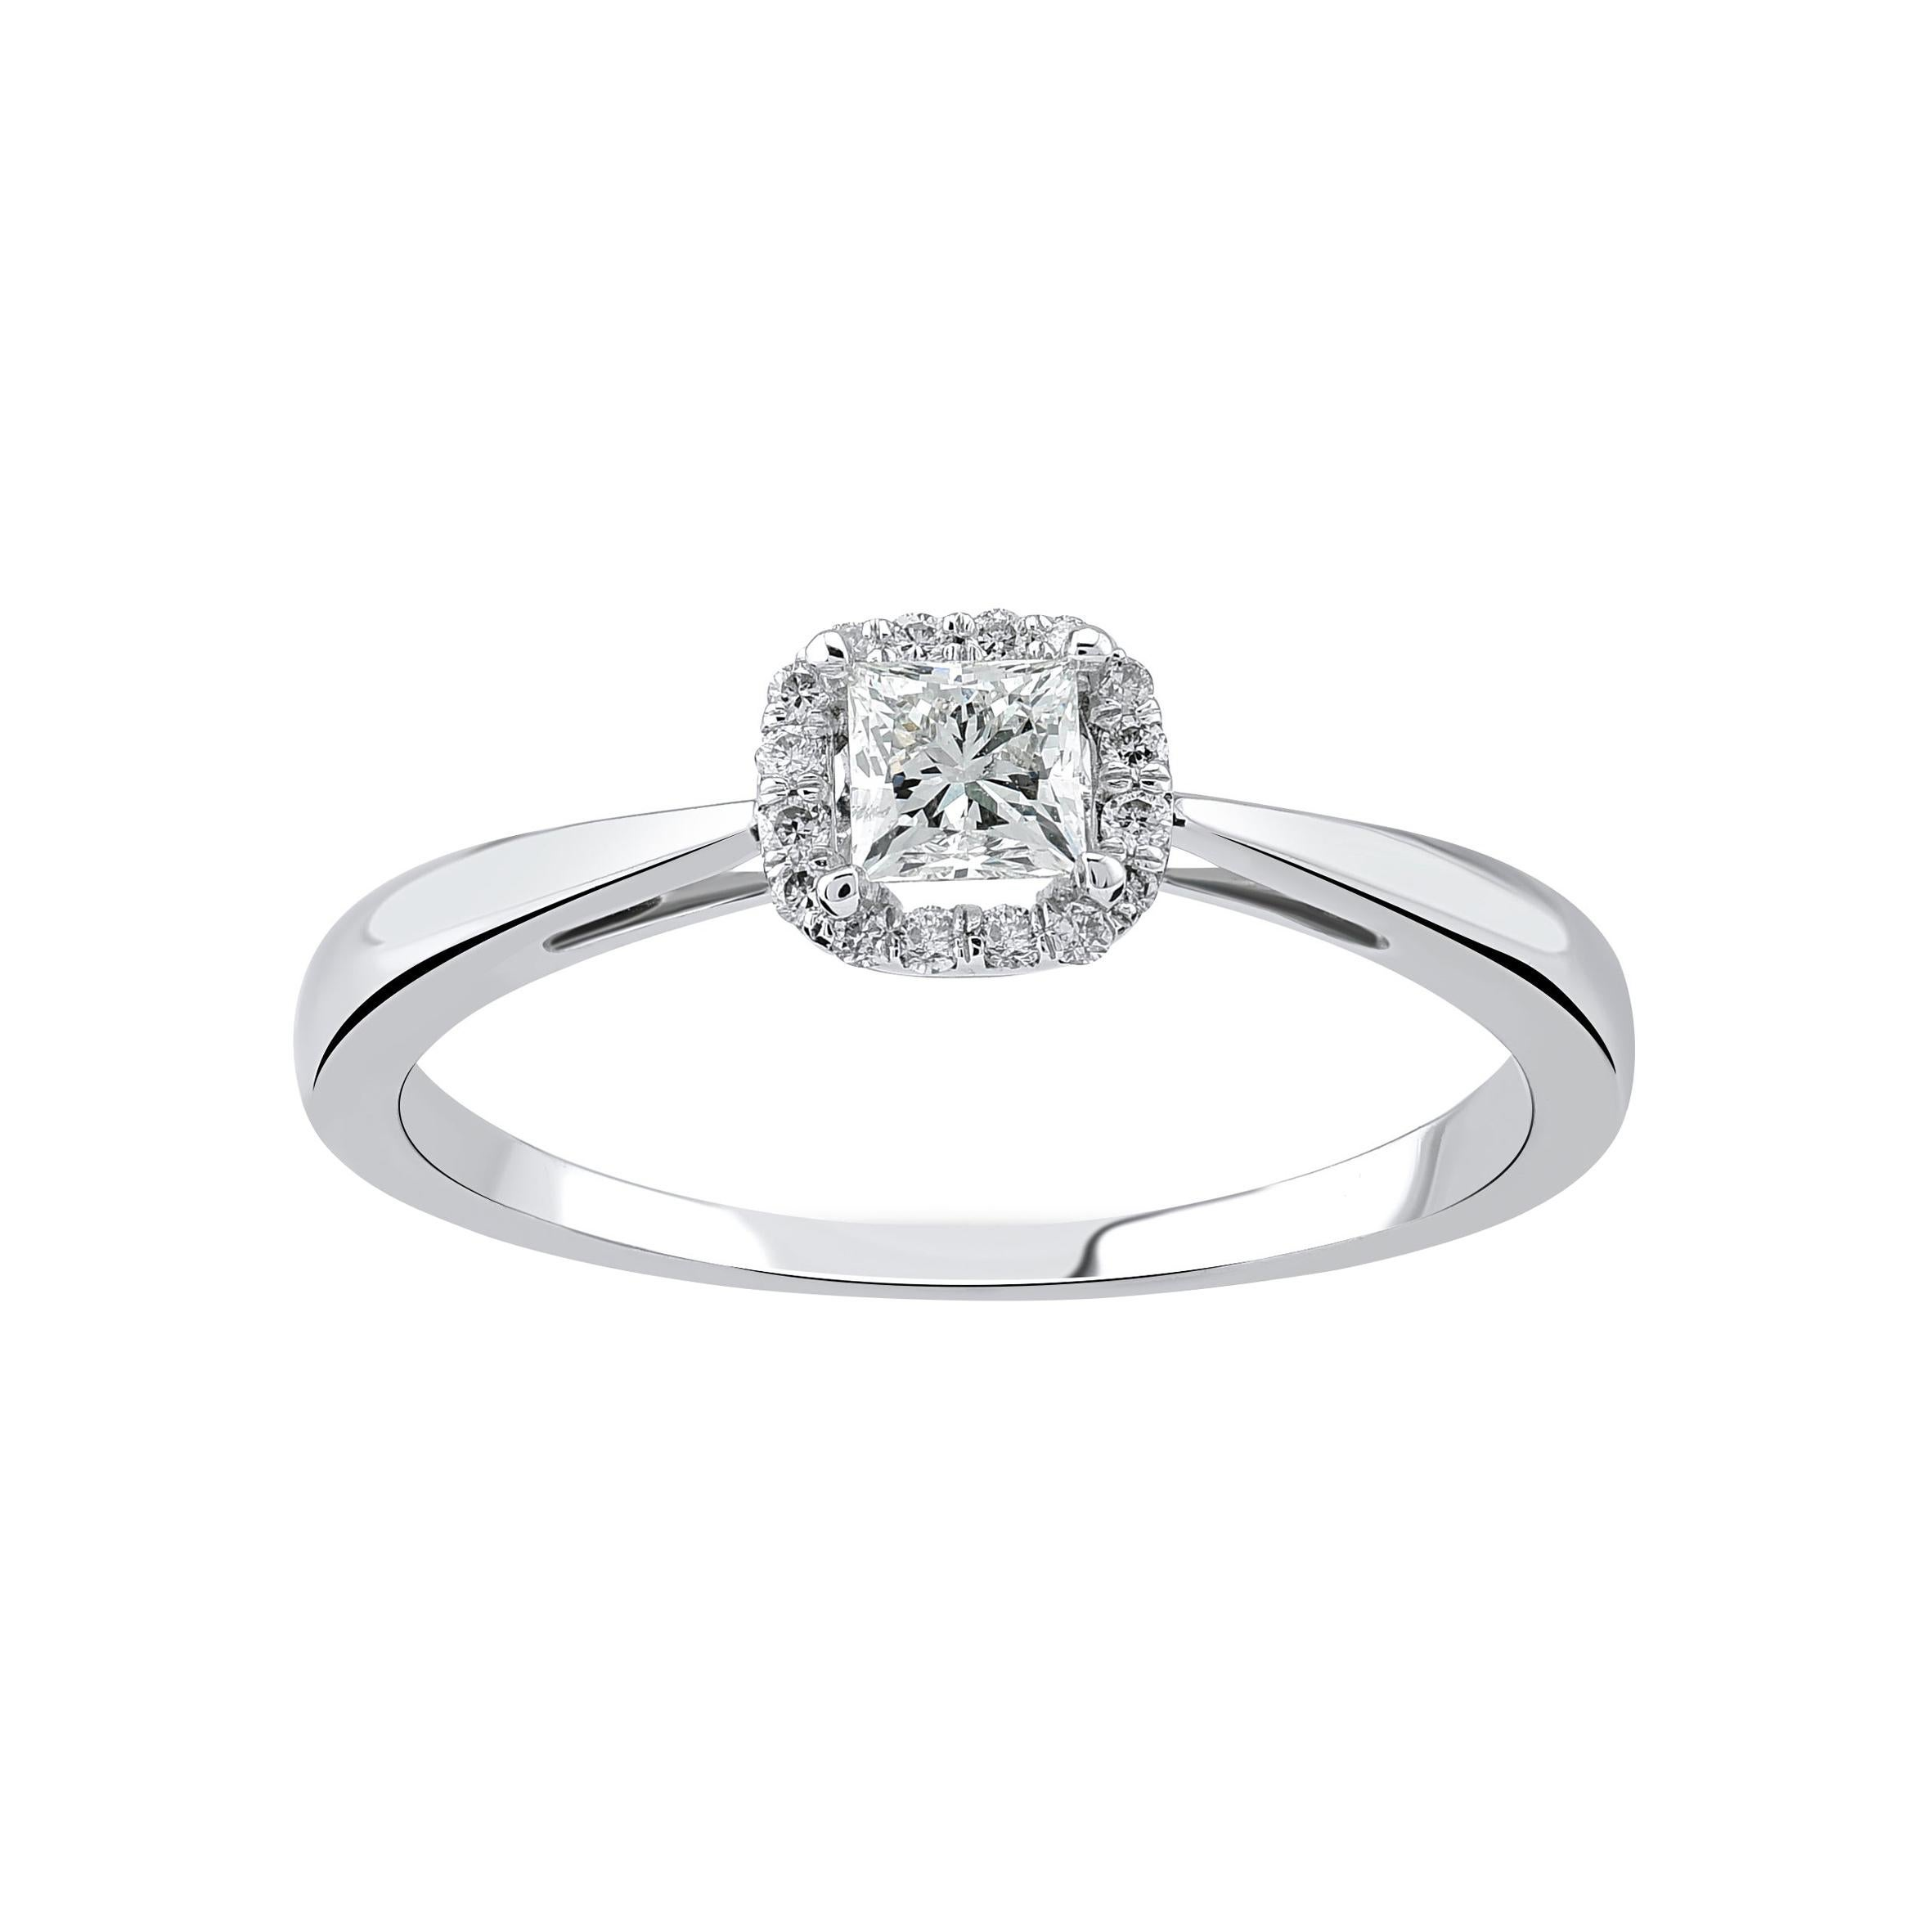 18k White Gold Ring with Princess-Cut and Round-Cut Diamonds